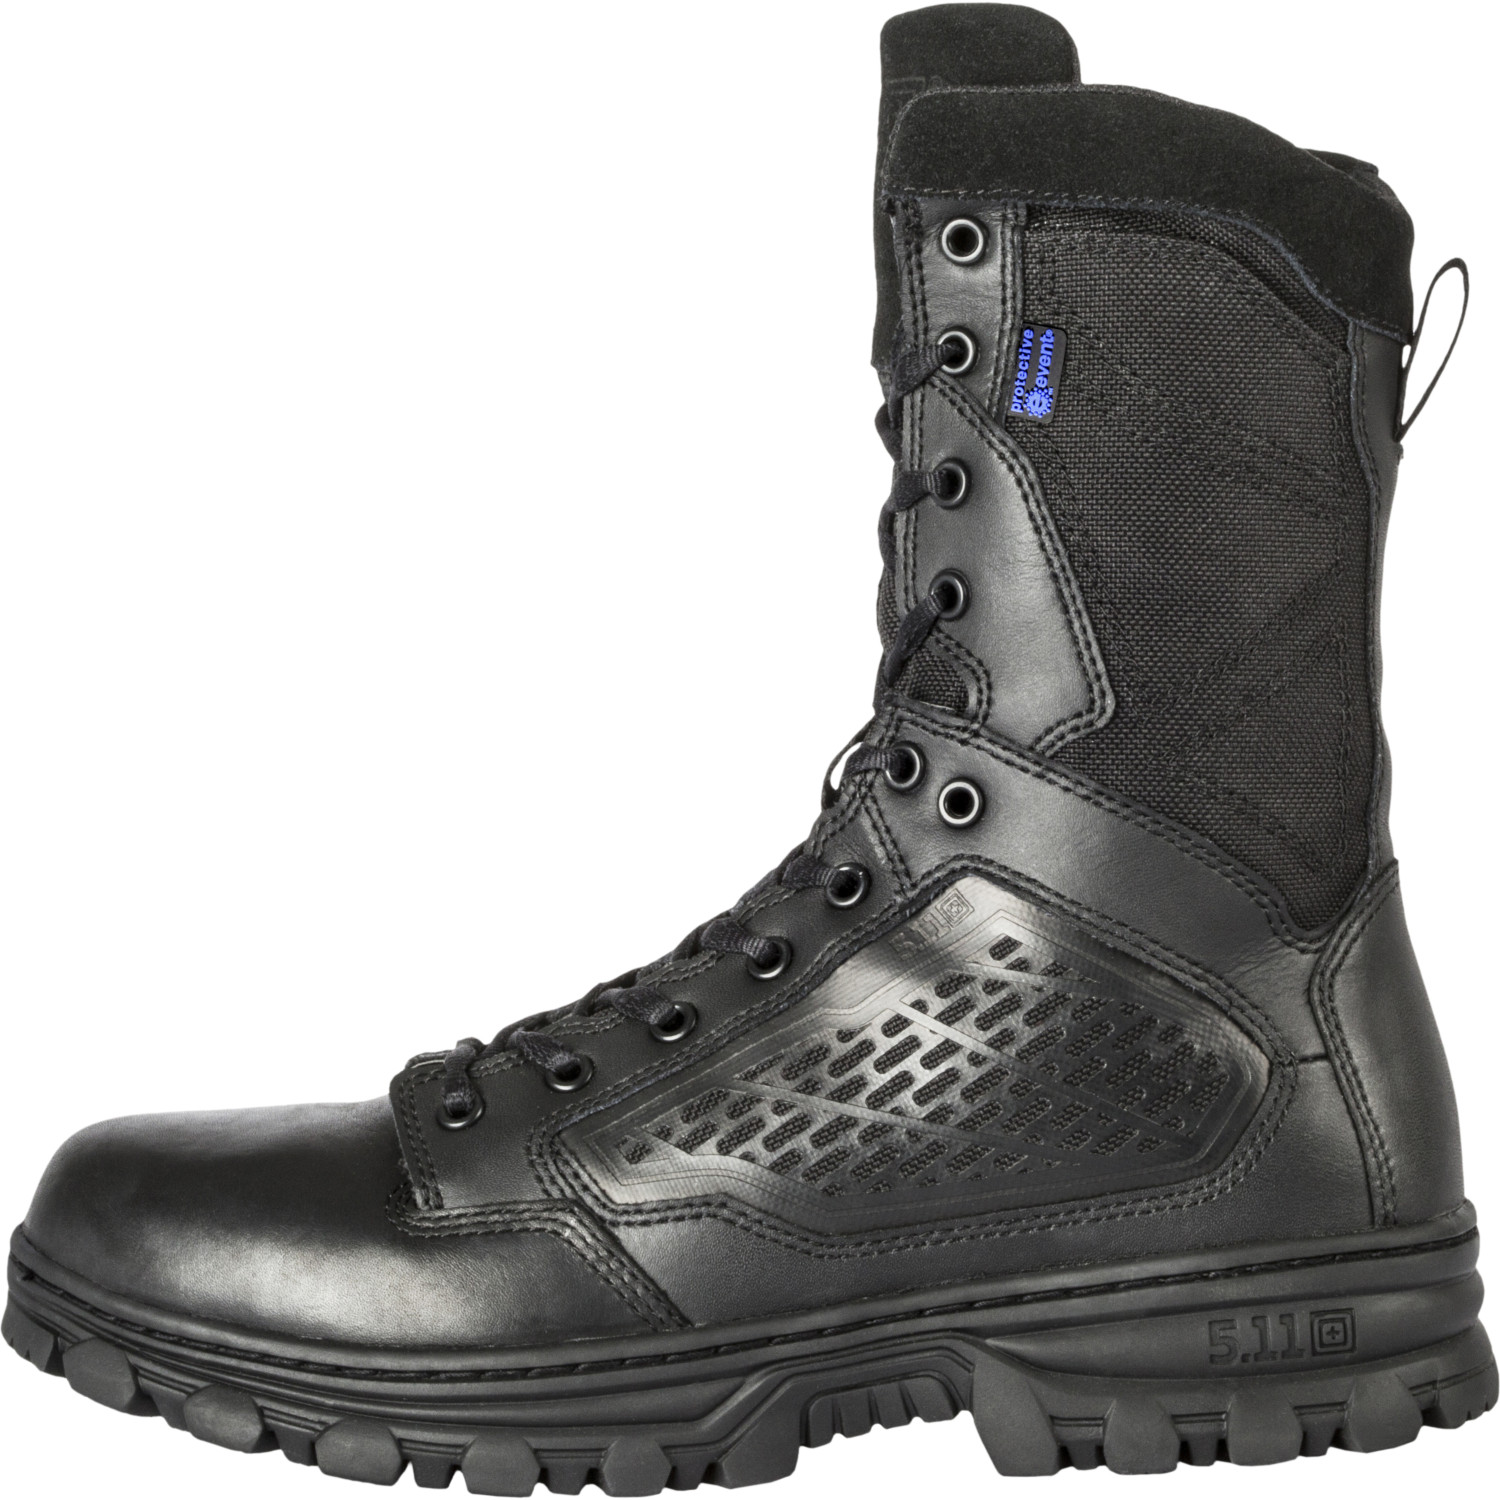 Boots from Nightgear UK